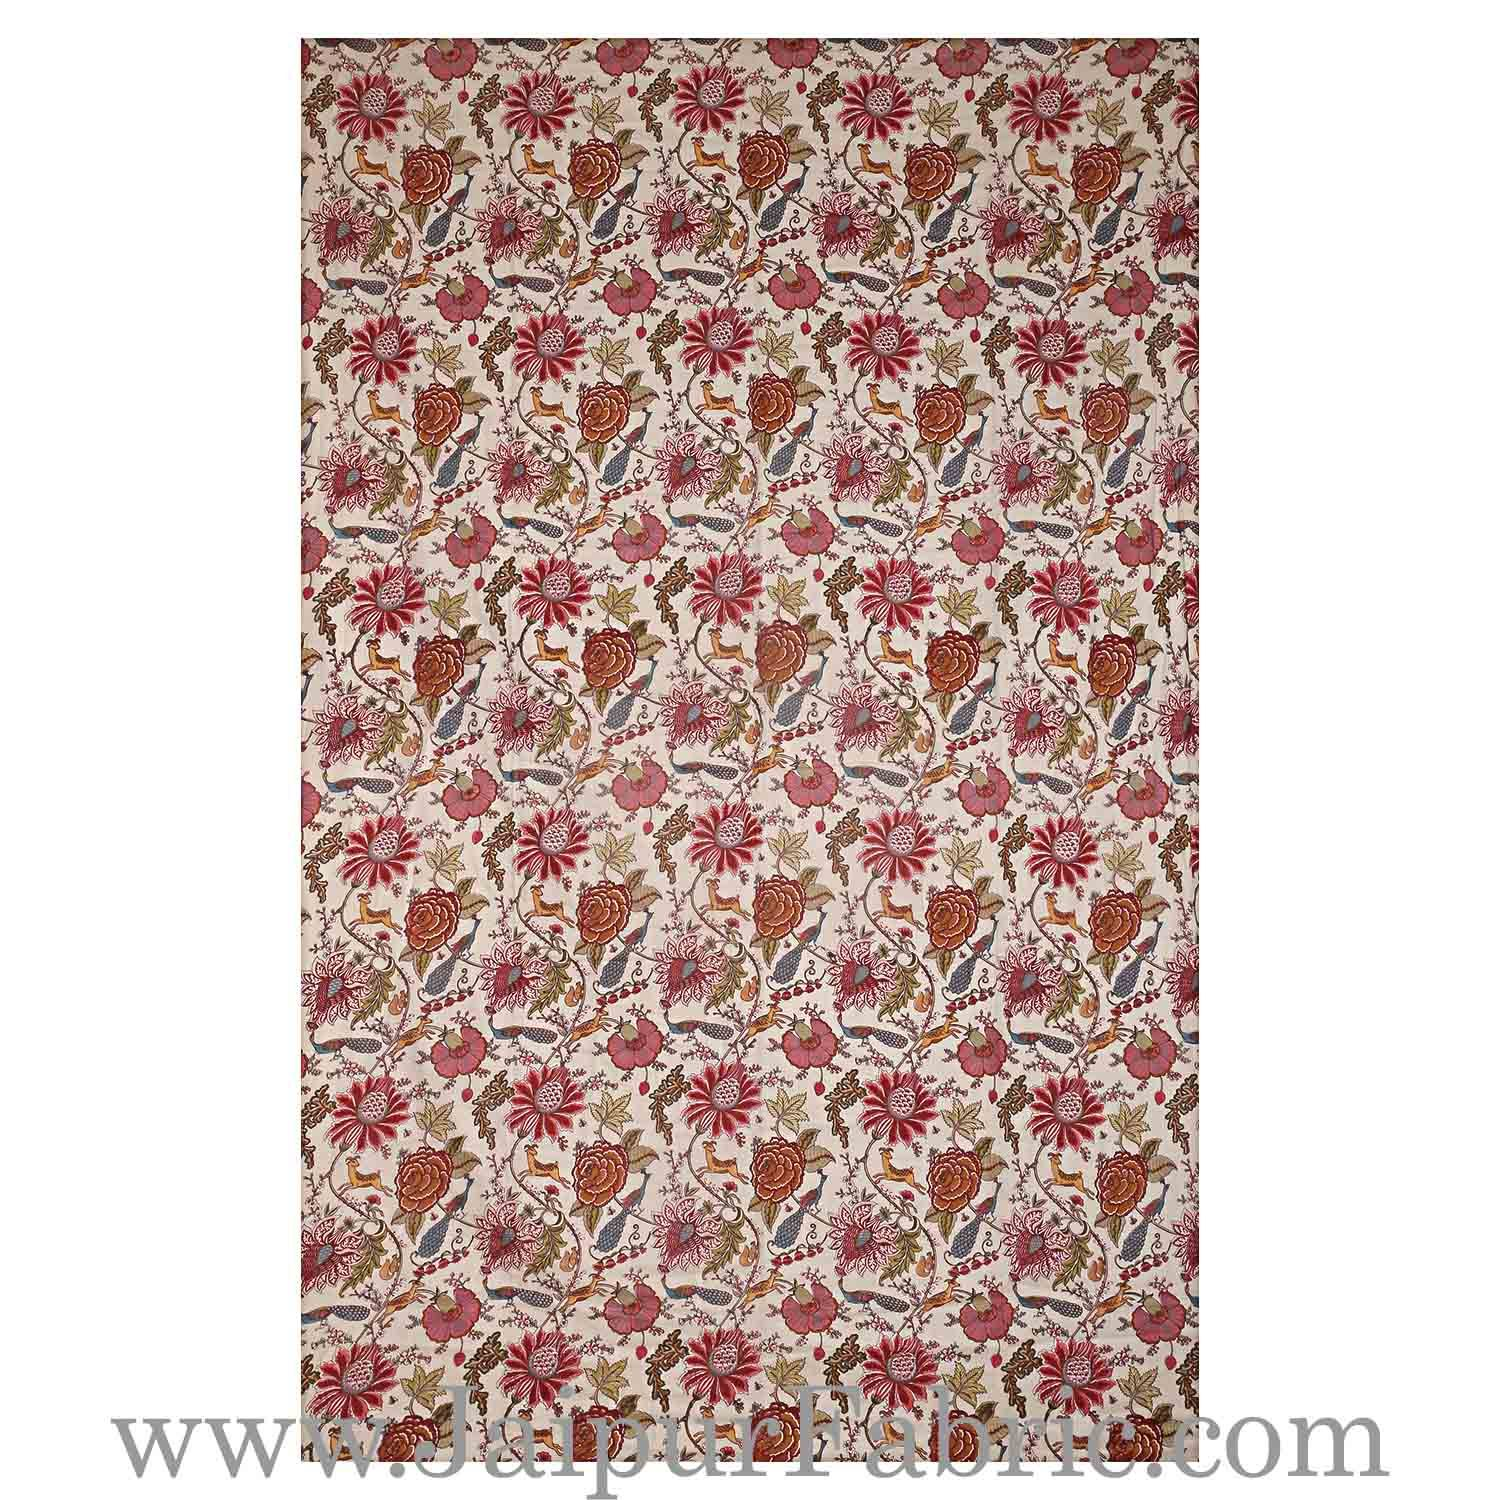 Muslin Cotton Single bed Reversible mulmul Dohar in pink floral motif print